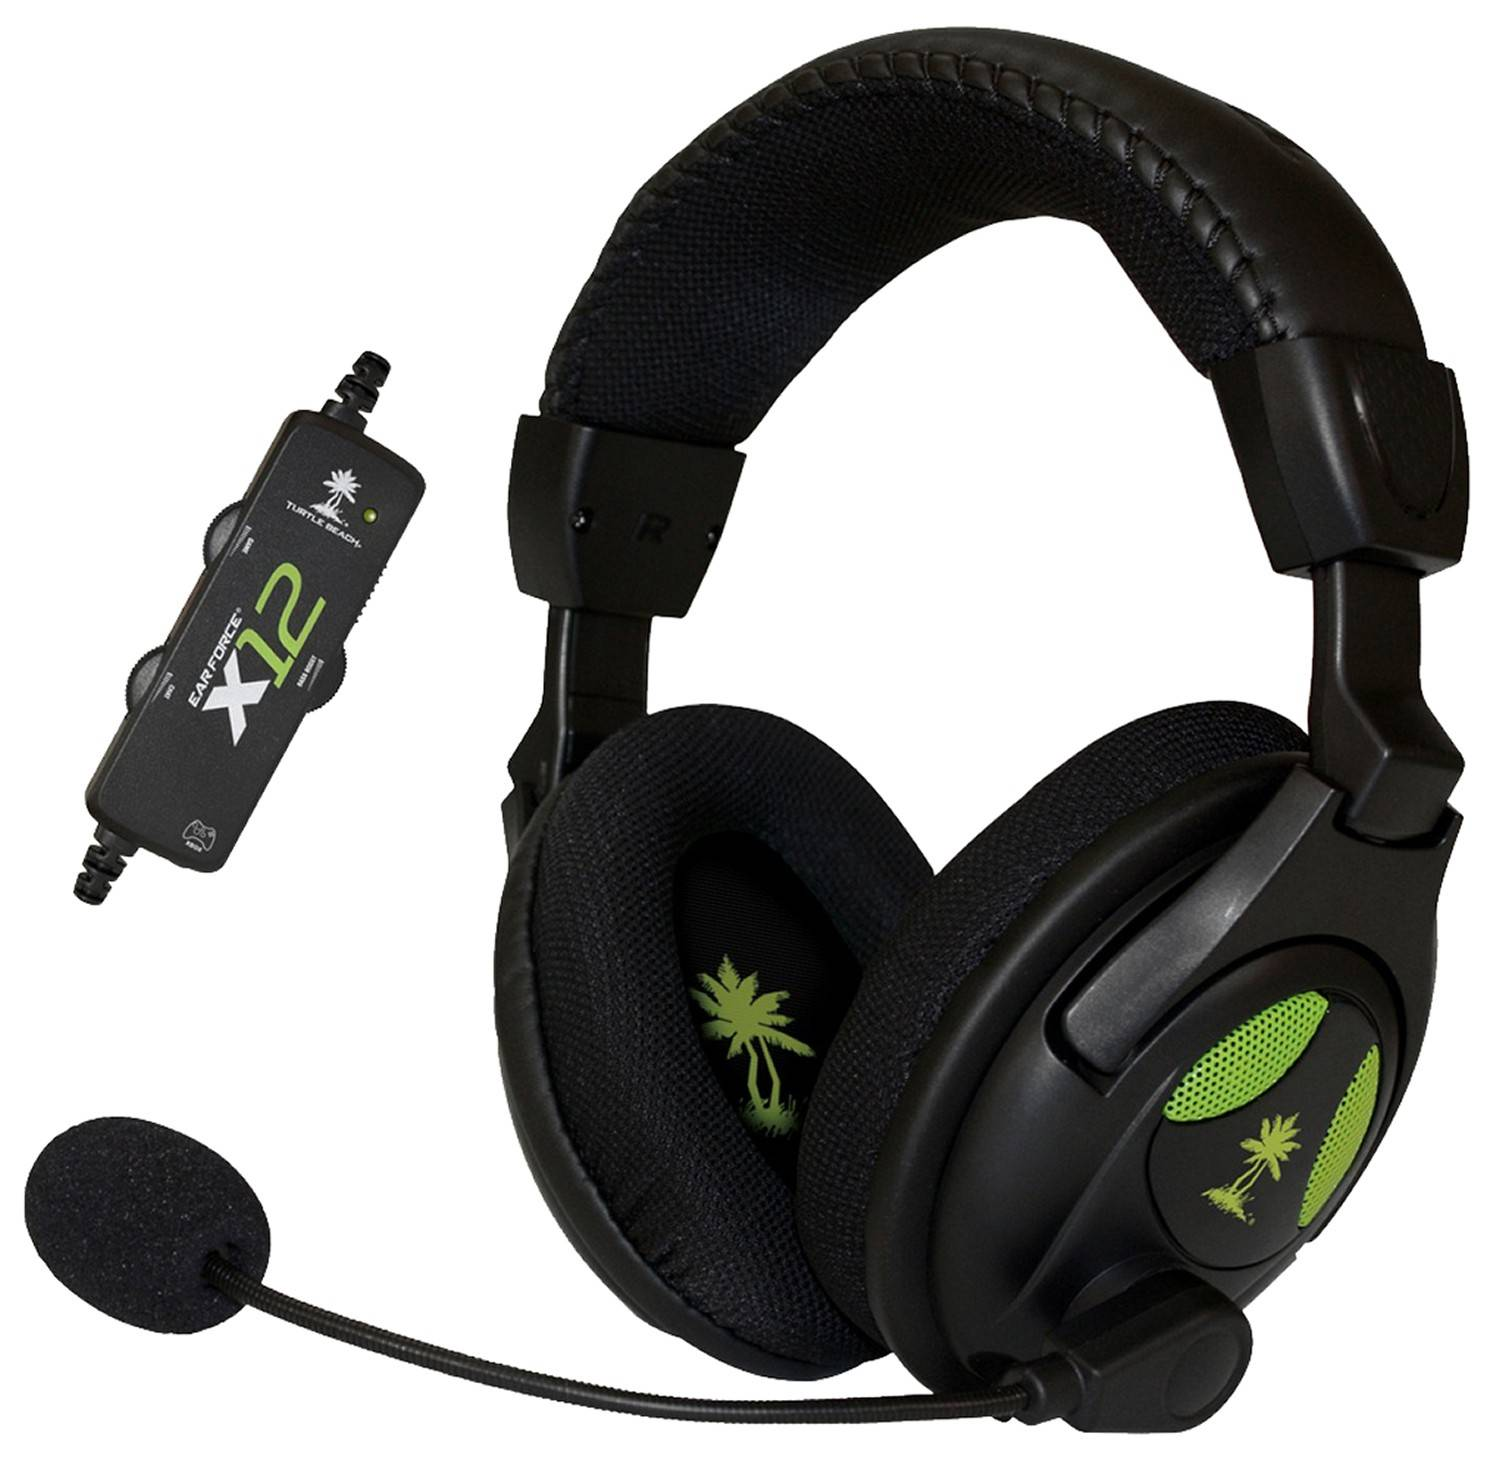 Turtle Beach Ear Force X12 kuulokkeet